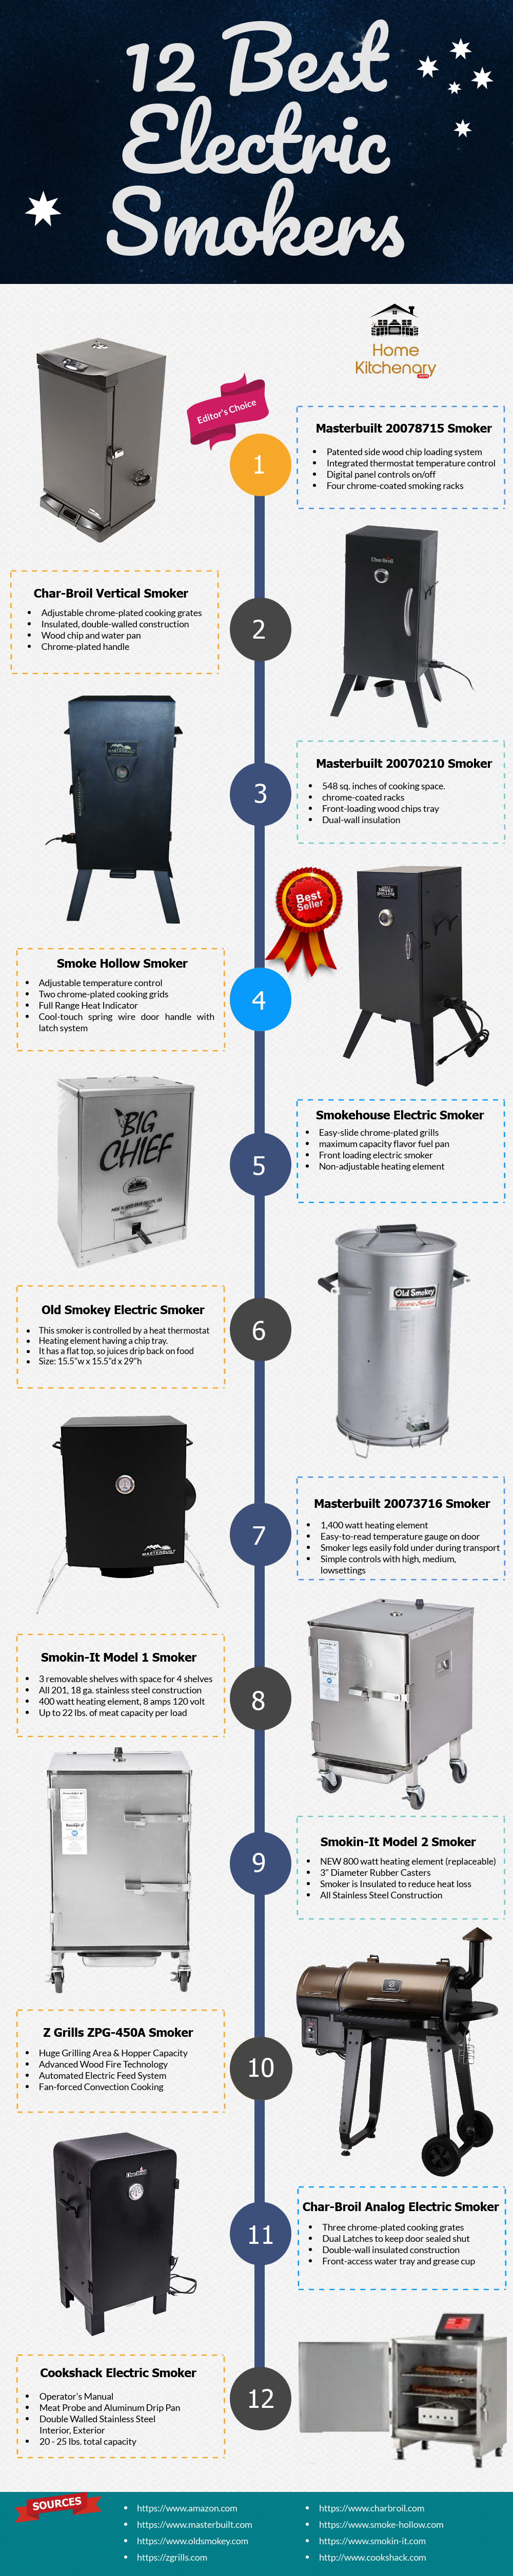 12 Best Electric Smokers